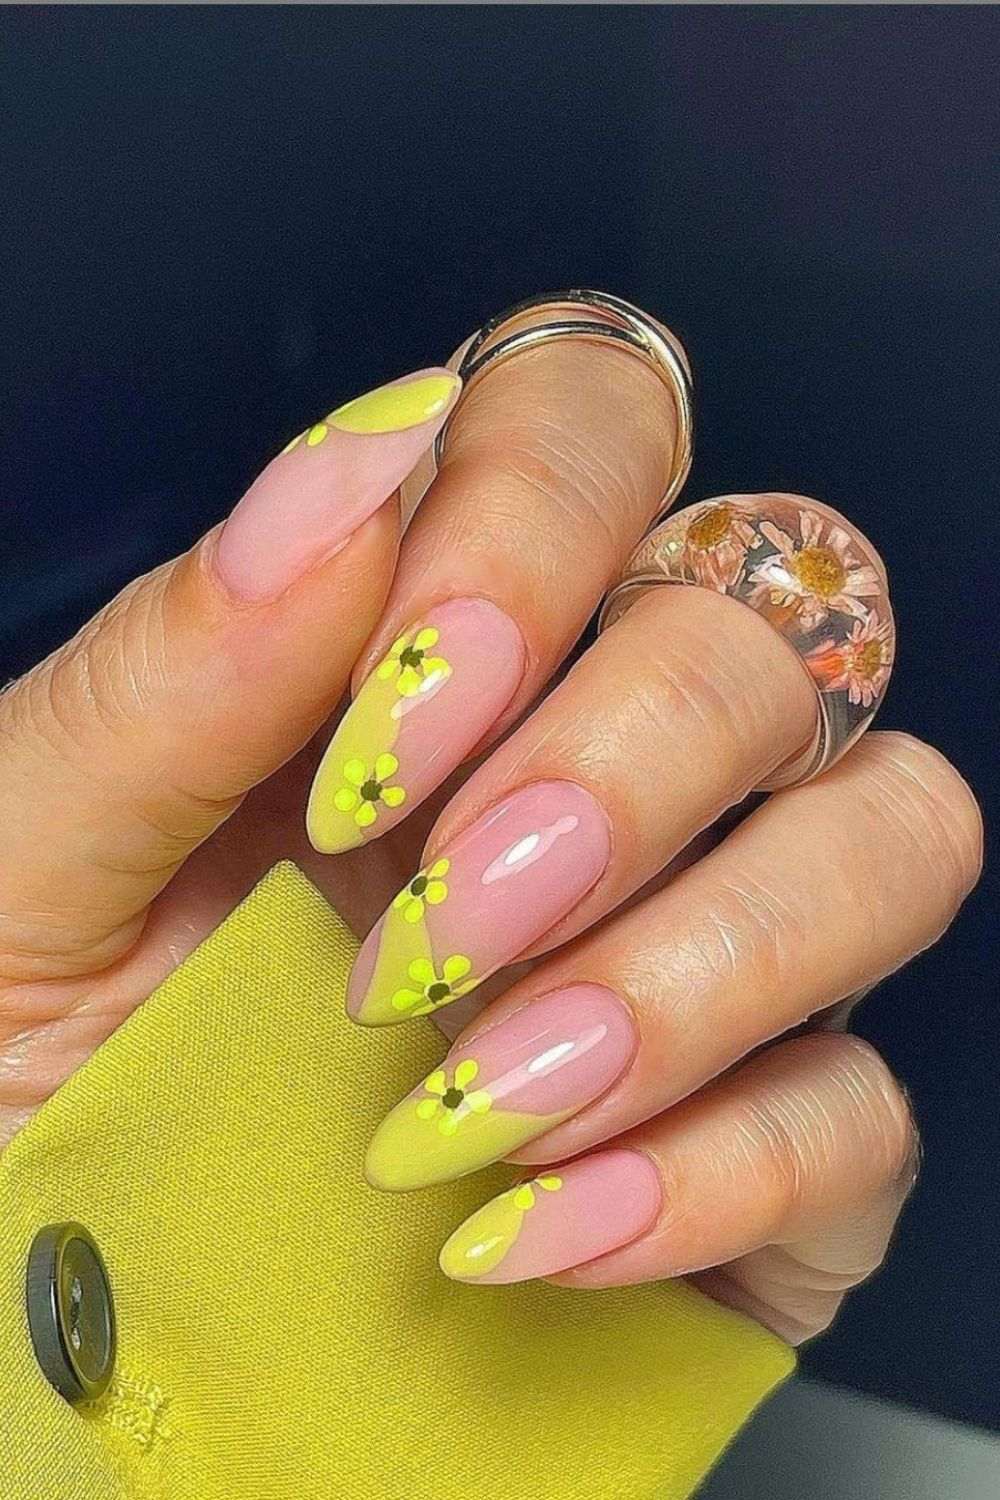 Best Green nail designs to try 2021: neon green, lime green, dark green